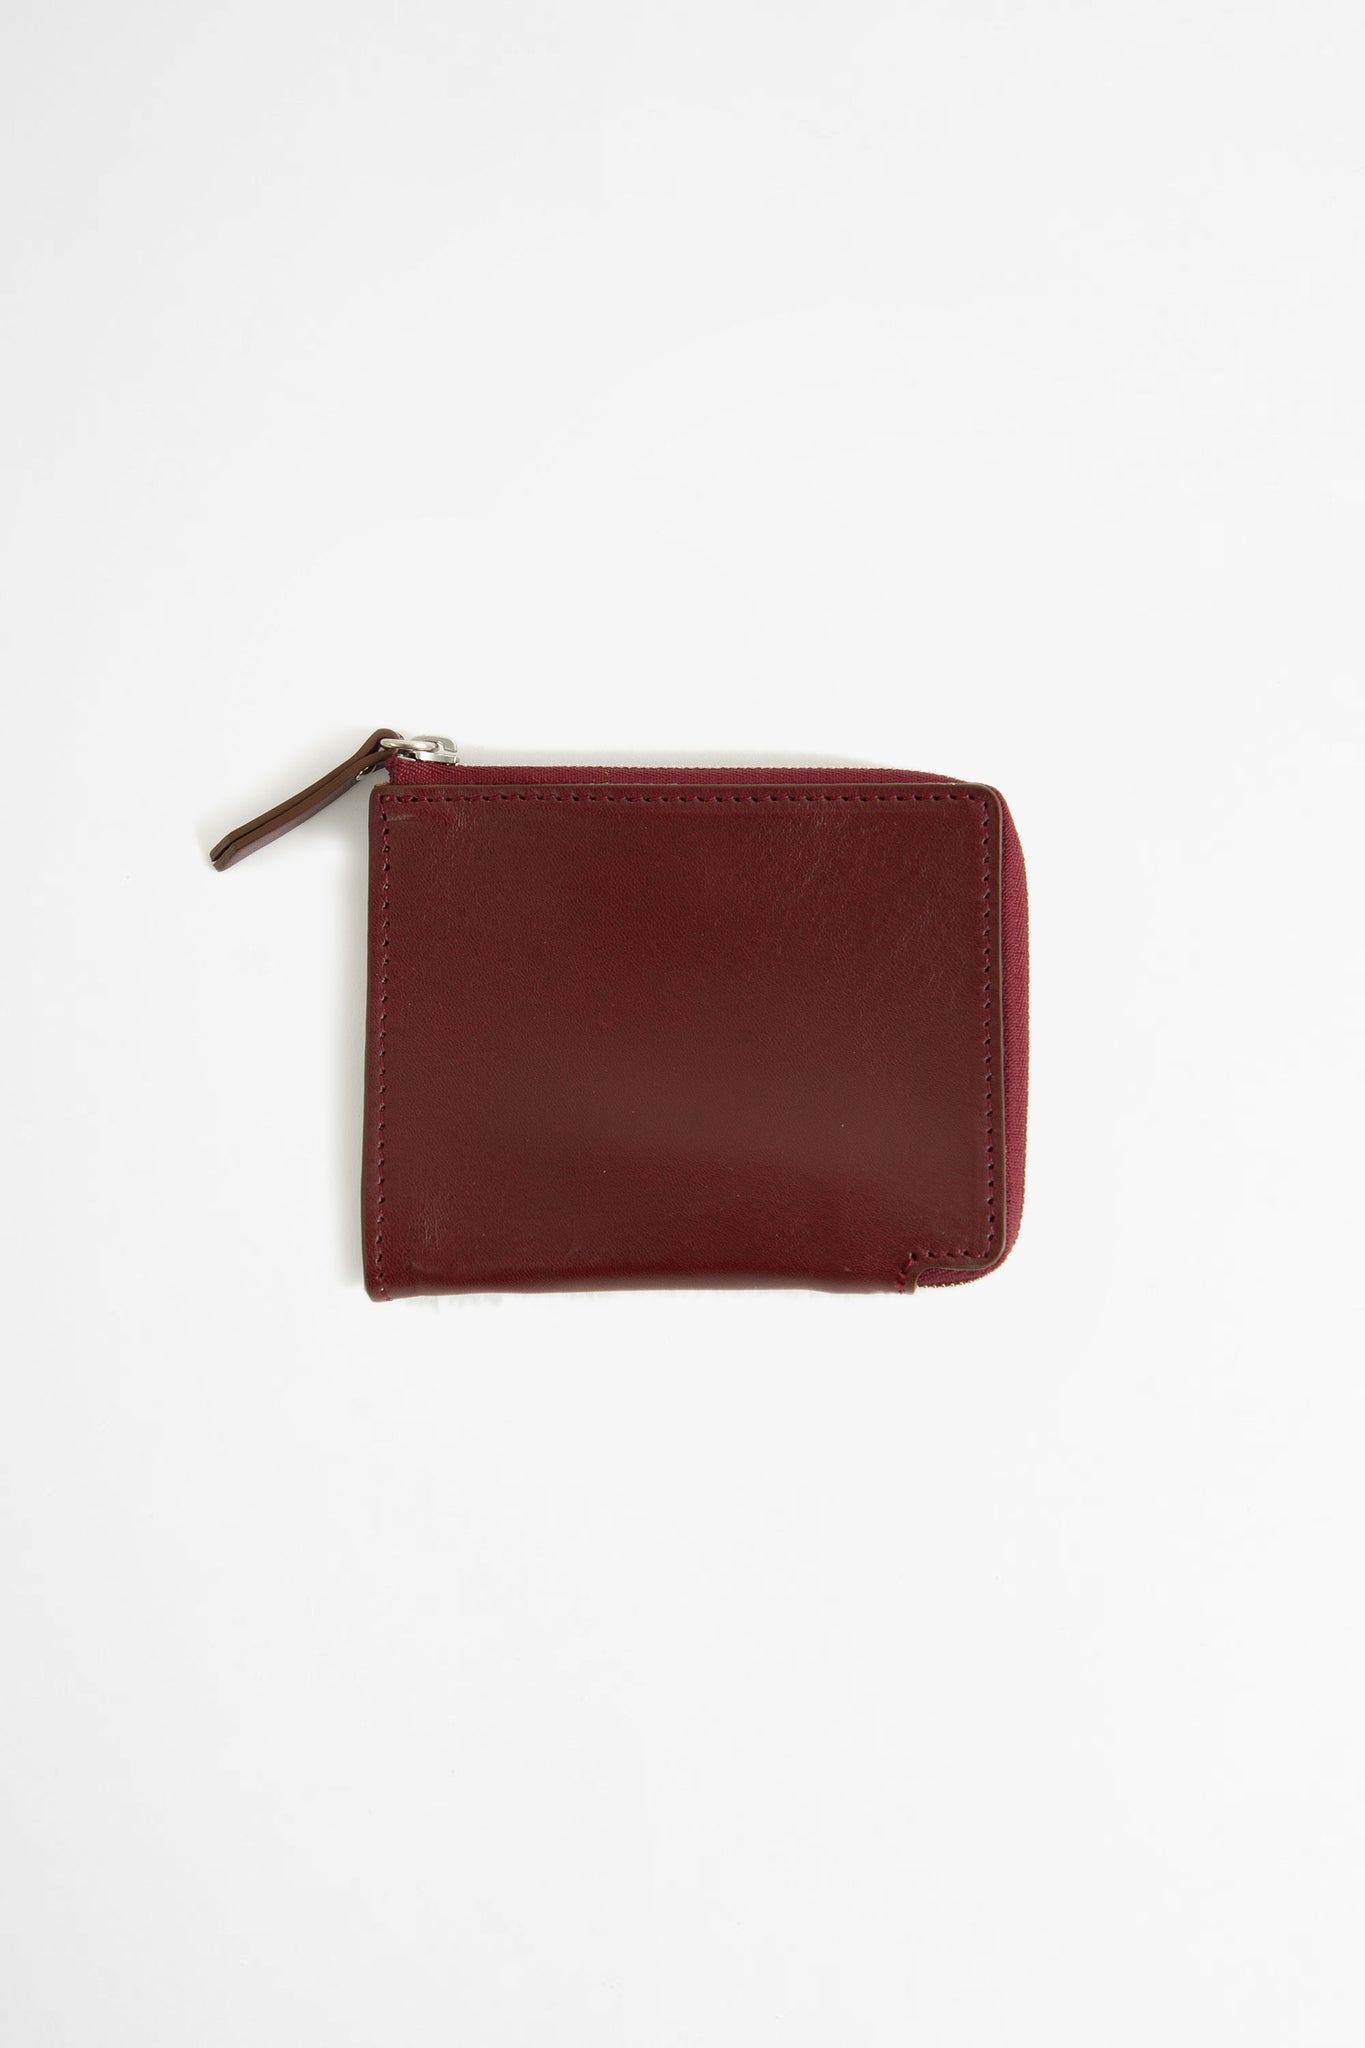 Zip-around leather wallet burgundy